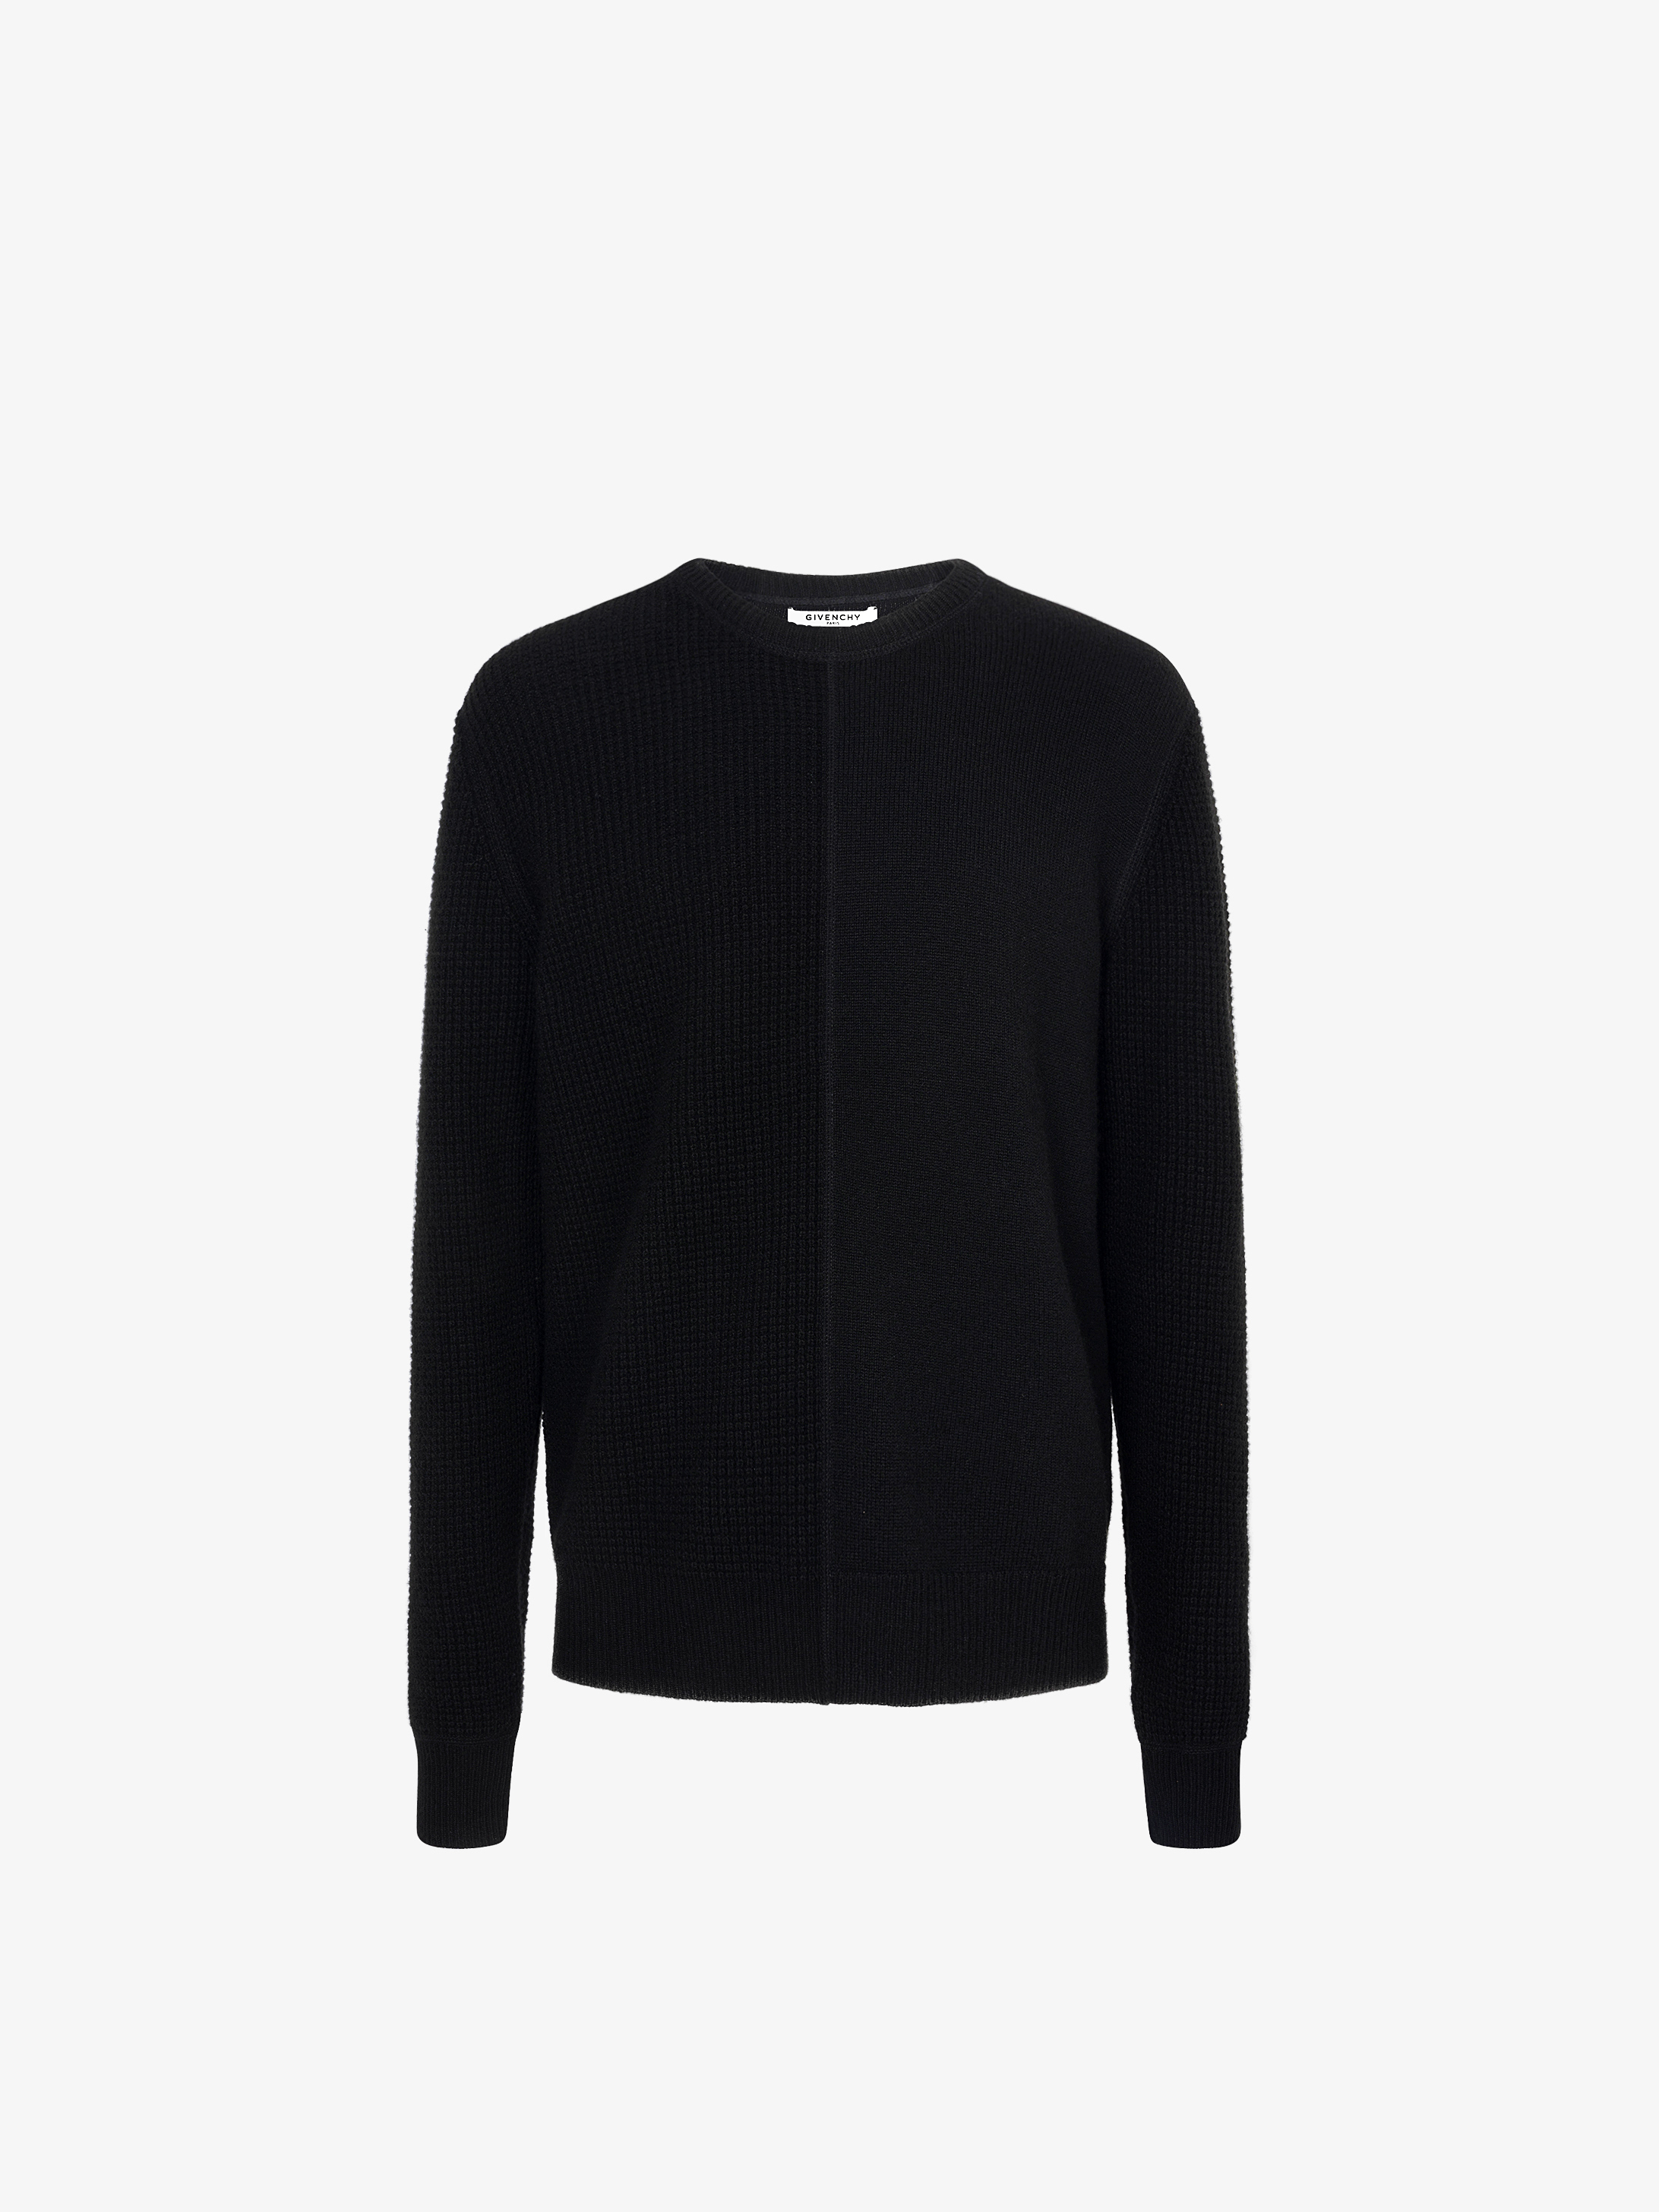 GIVENCHY PARIS embroidered sweater in cashmere